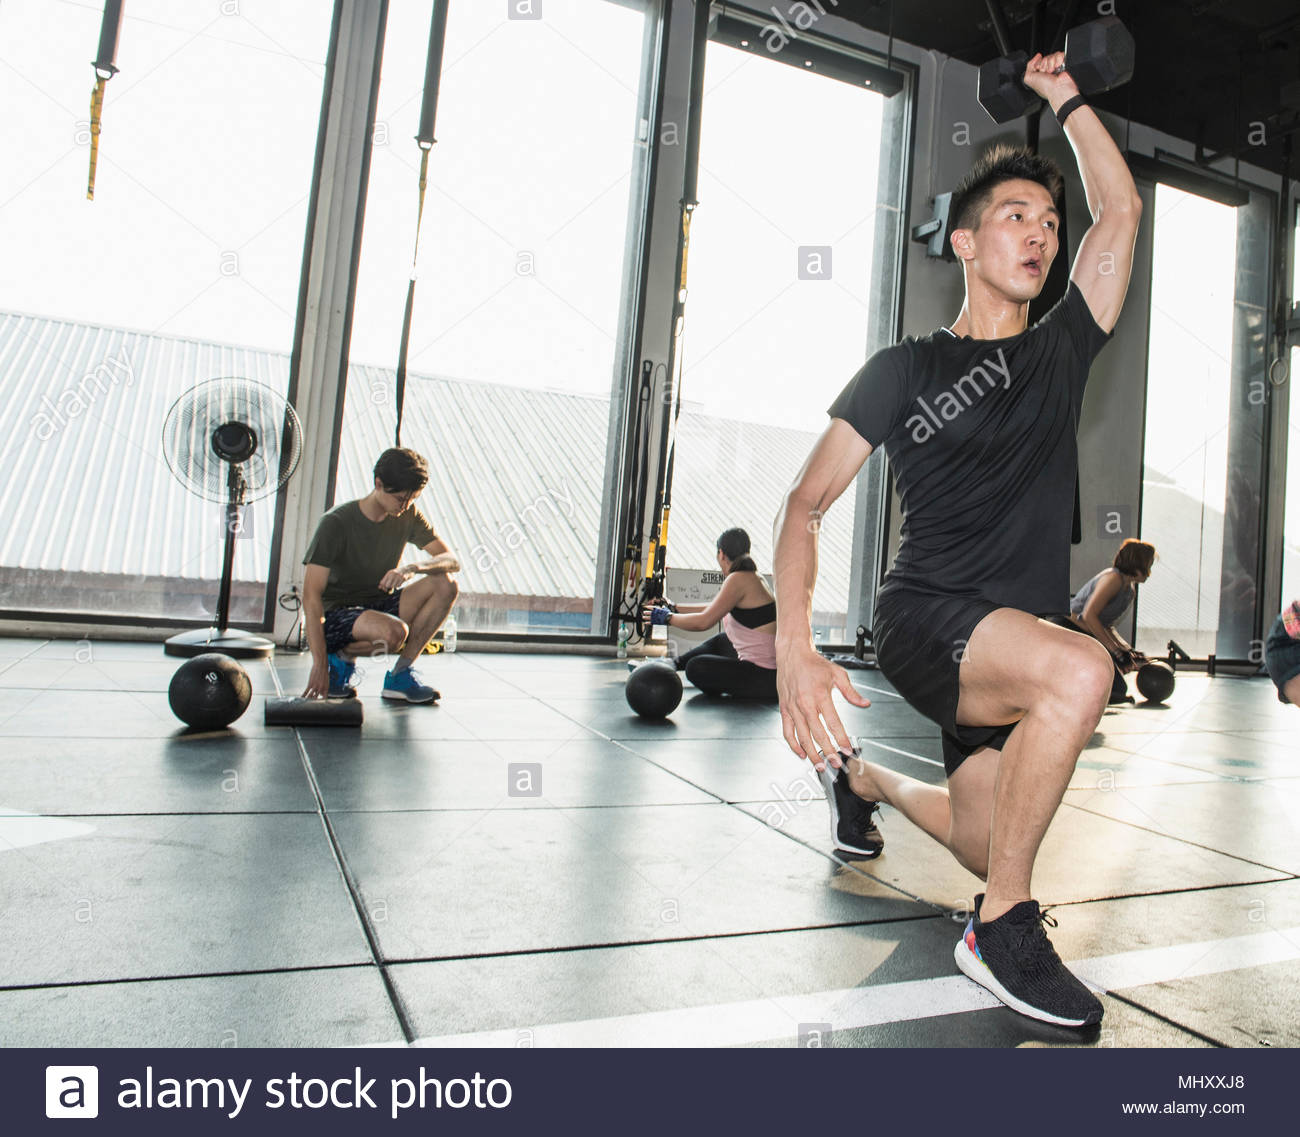 Group of people working out in gym, man in foreground lifting hand weights - Stock Image